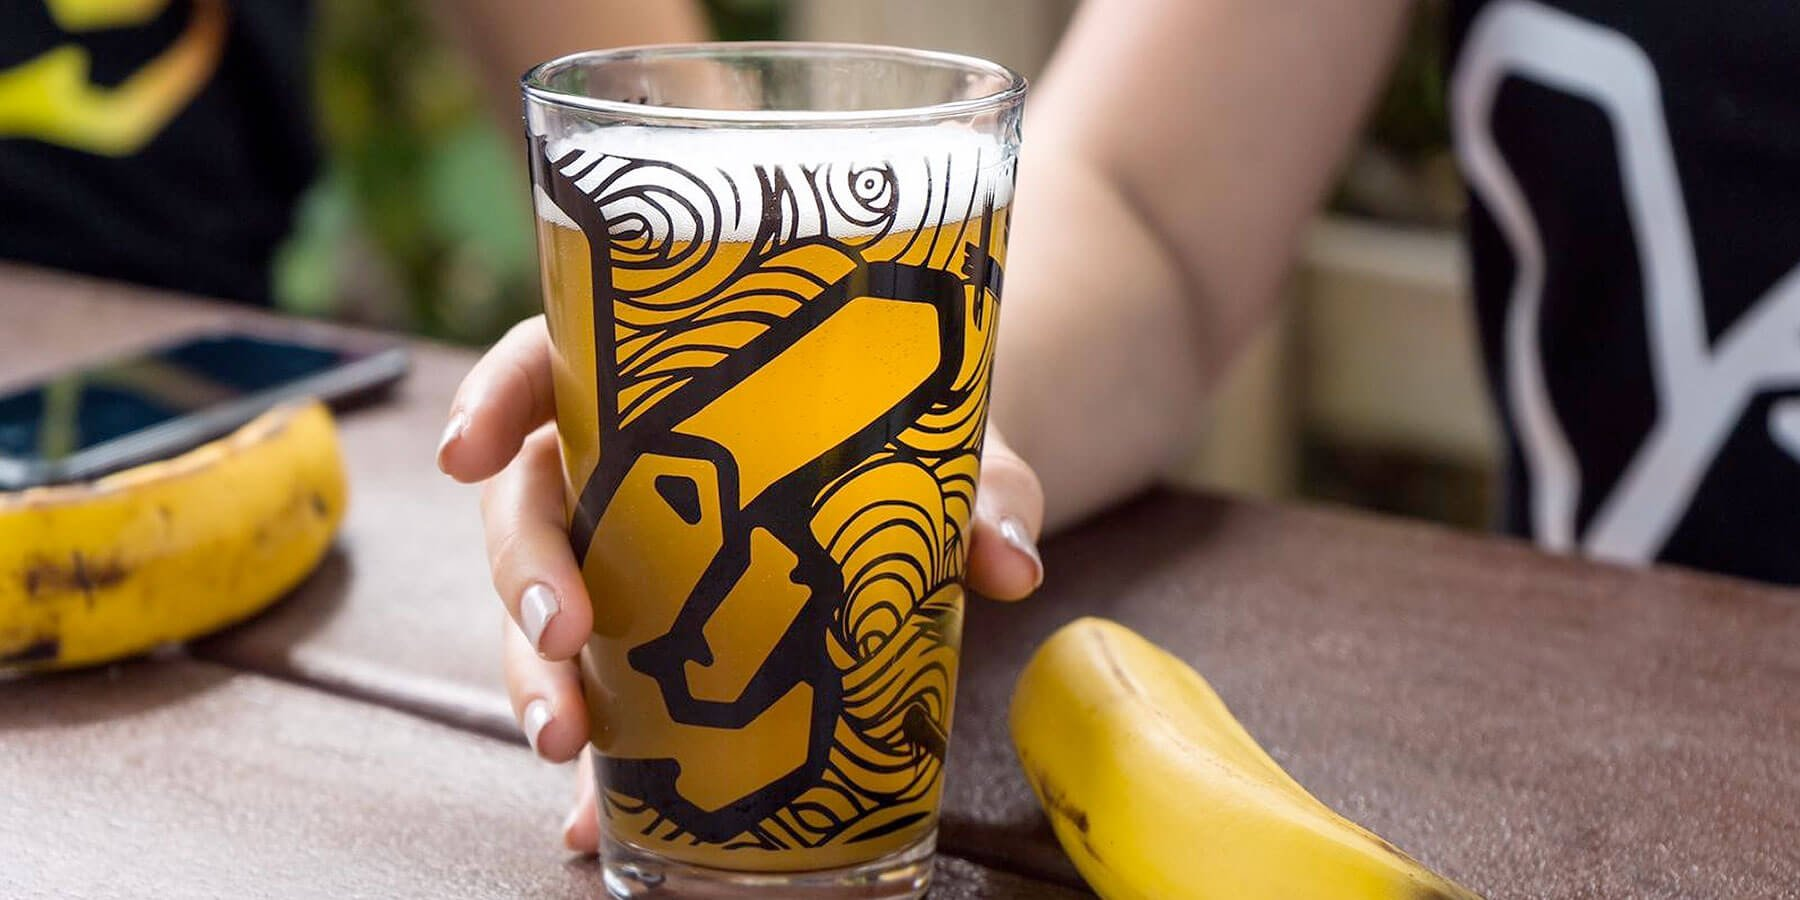 Beer in a Yeasty Brews branded shaker pint glass